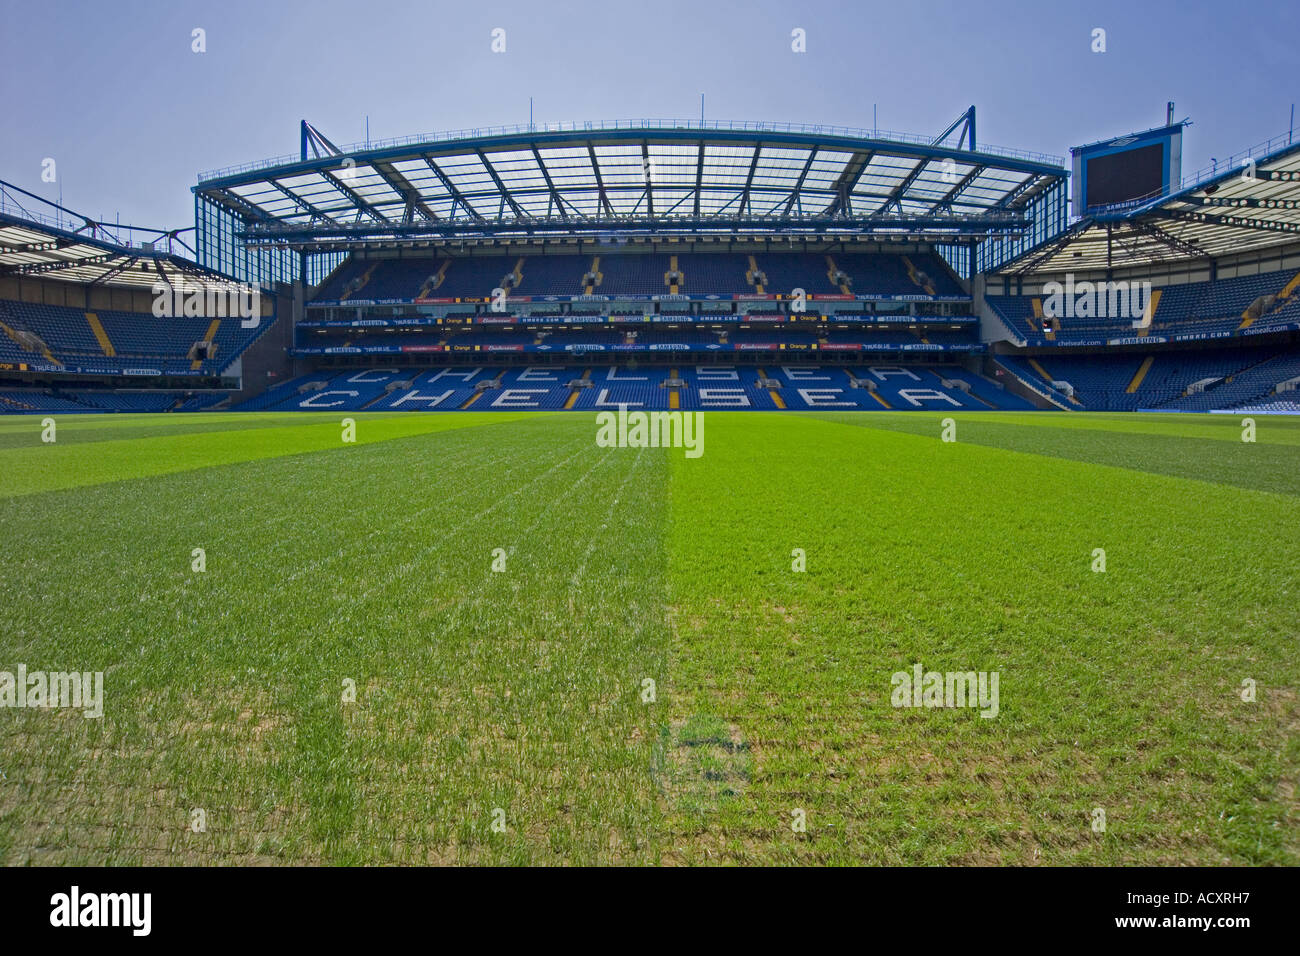 Chelsea football club stand - Stock Image